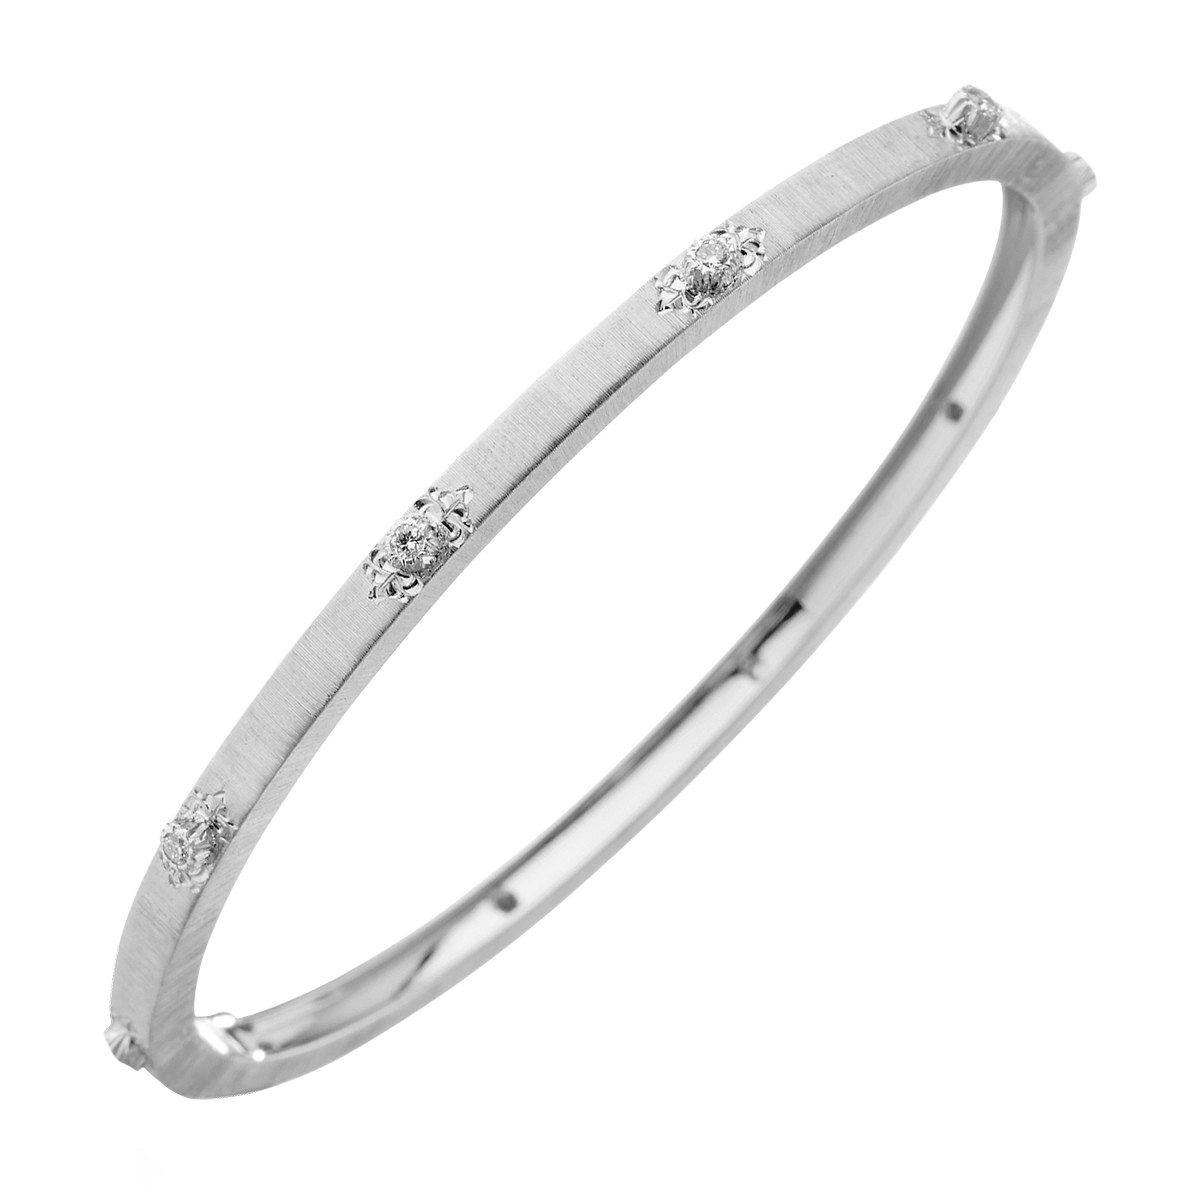 "Thin 18k White Gold & Diamond ""Macri"" Bangle"